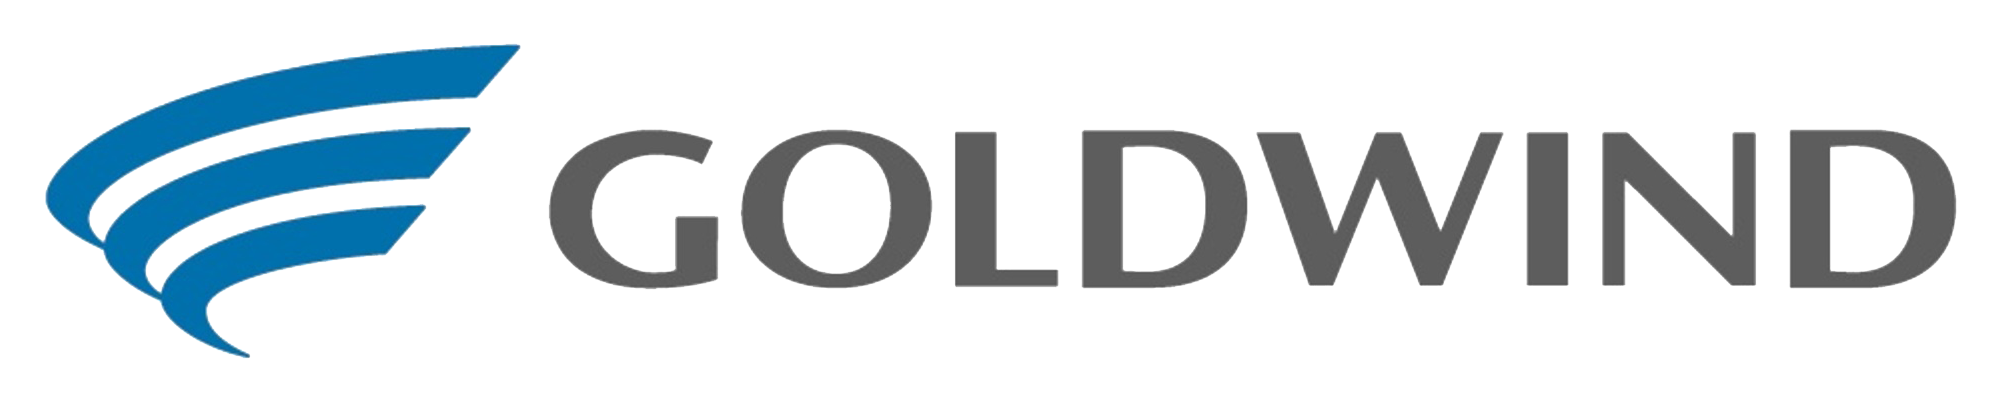 Goldwind | Your Energy Solutions Partner